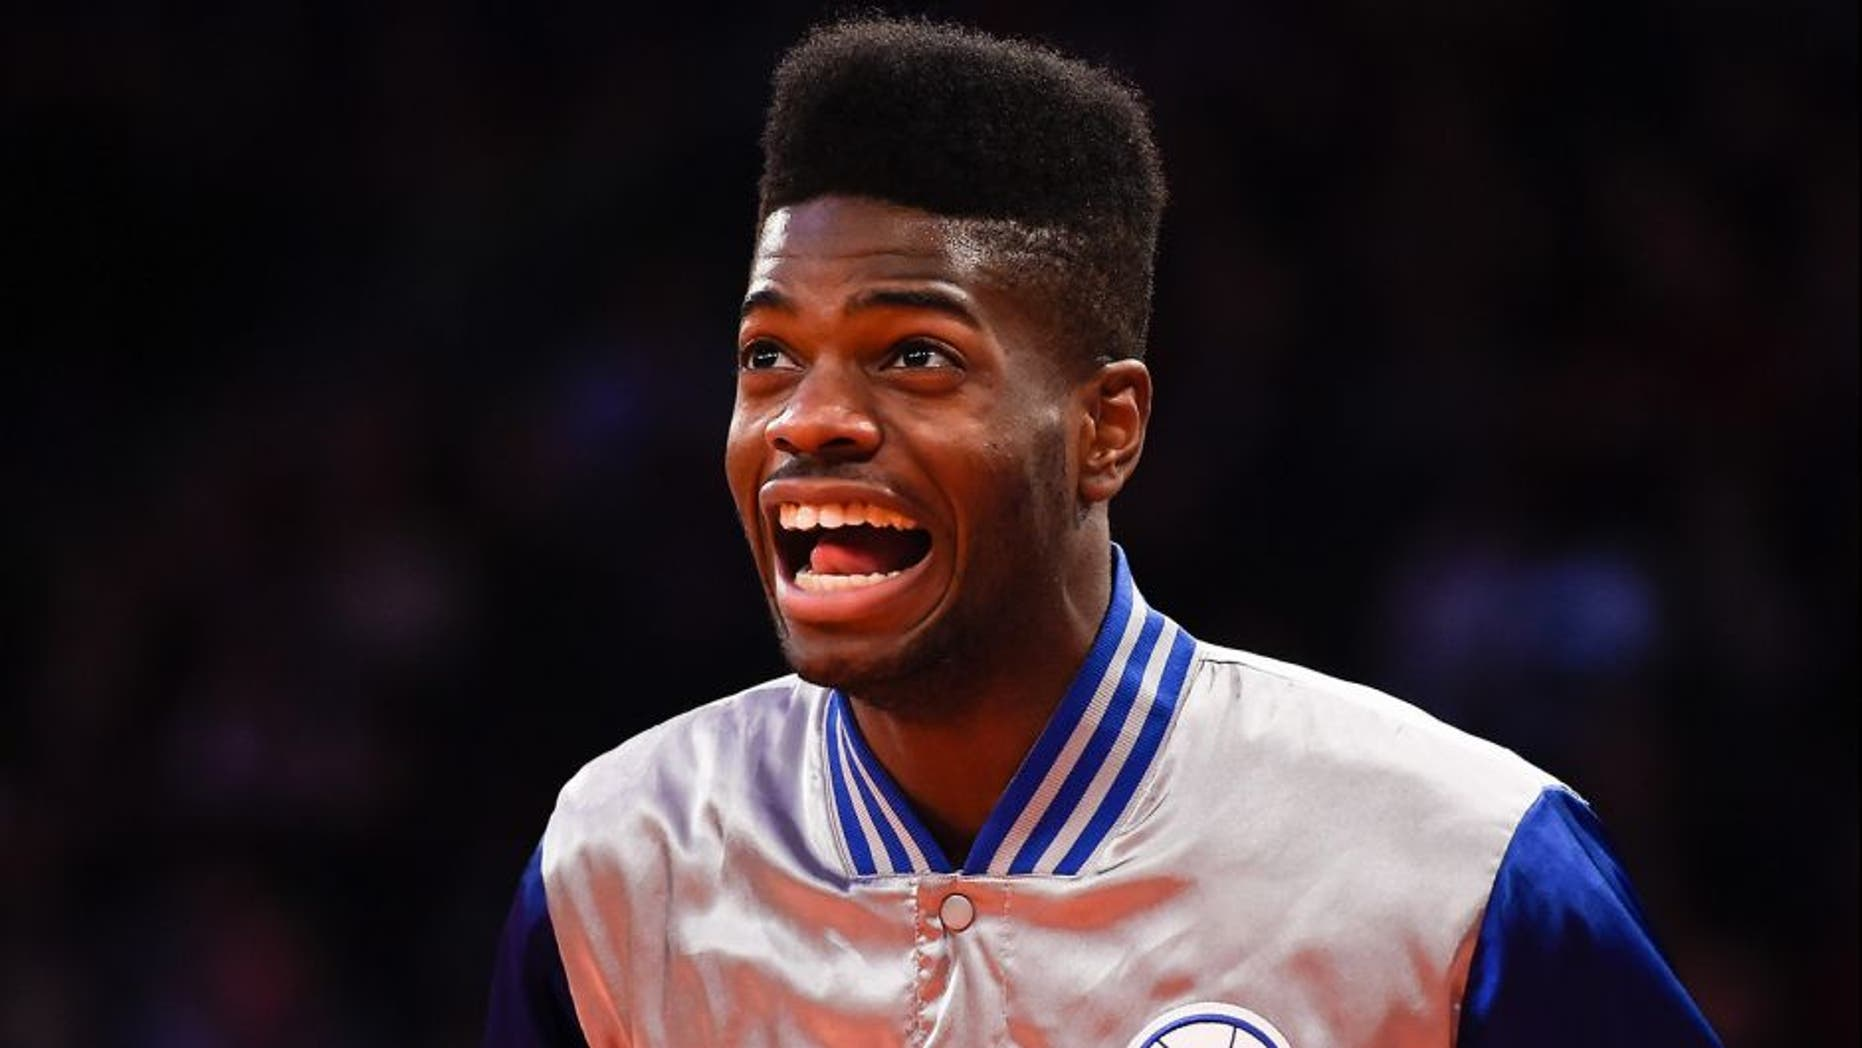 NEW YORK, NY - NOVEMBER 22: Nerlens Noel #4 of the Philadelphia 76ers looks on before a game against the New York Knicks at Madison Square Garden on November 22, 2014 in New York City. NOTE TO USER: User expressly acknowledges and agrees that, by downloading and/or using this photograph, user is consenting to the terms and conditions of the Getty Images License Agreement. (Photo by Alex Goodlett/Getty Images)